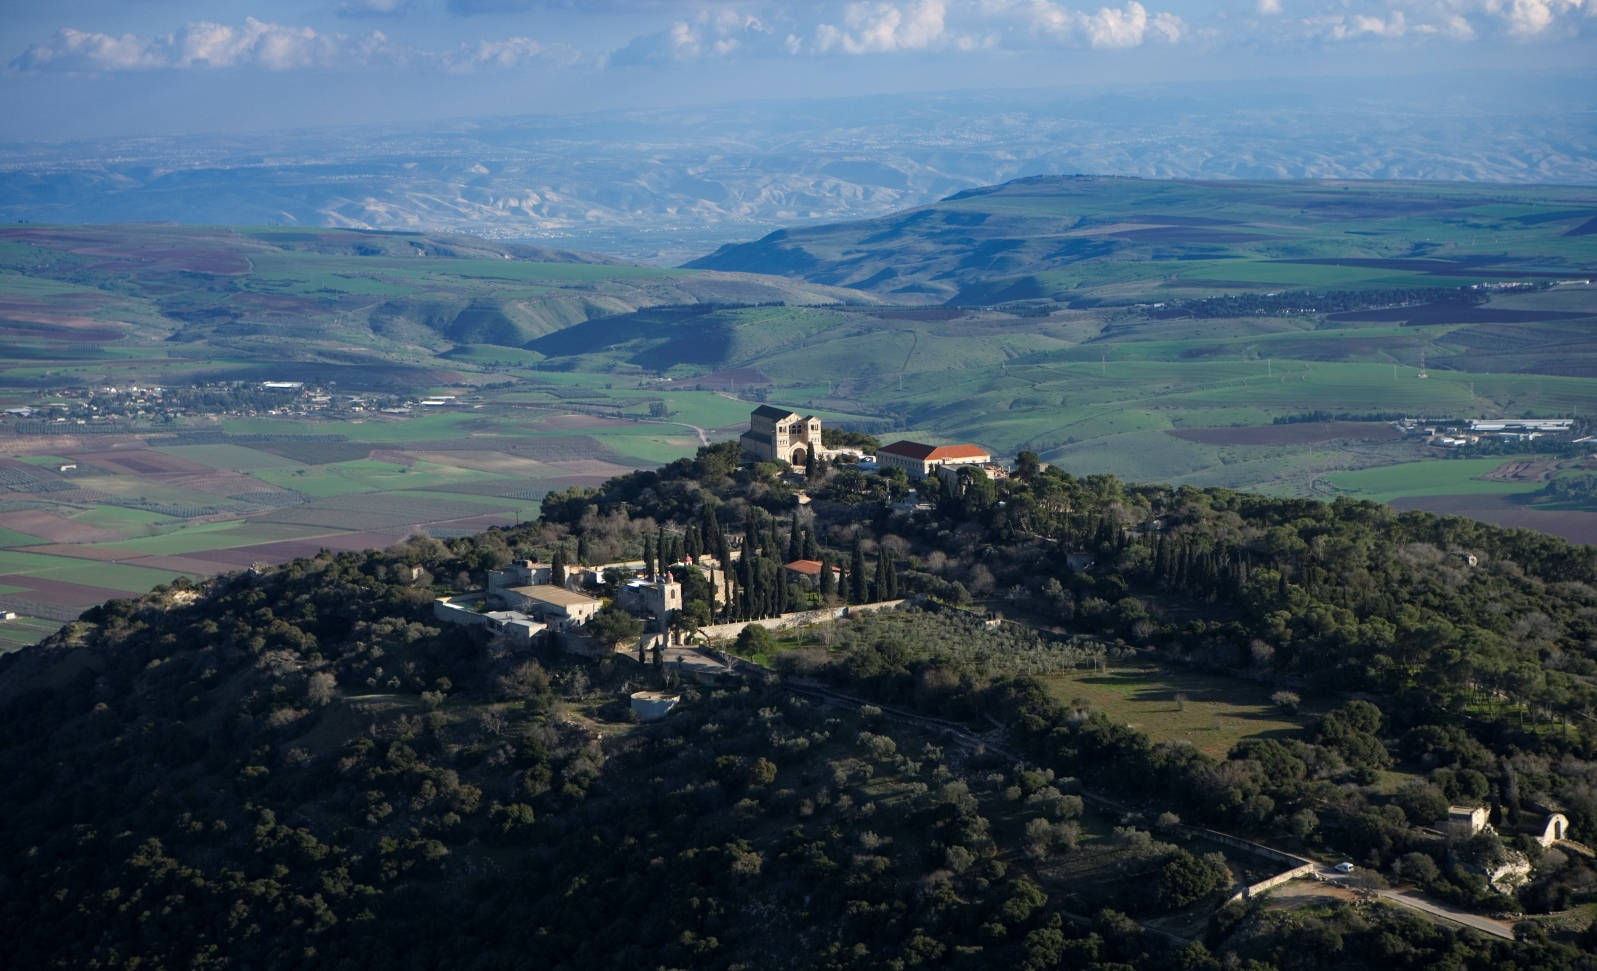 An aerial view of Mount Tabor and Lower Galilee. Photo by Mordagan/Israel Tourism Ministry